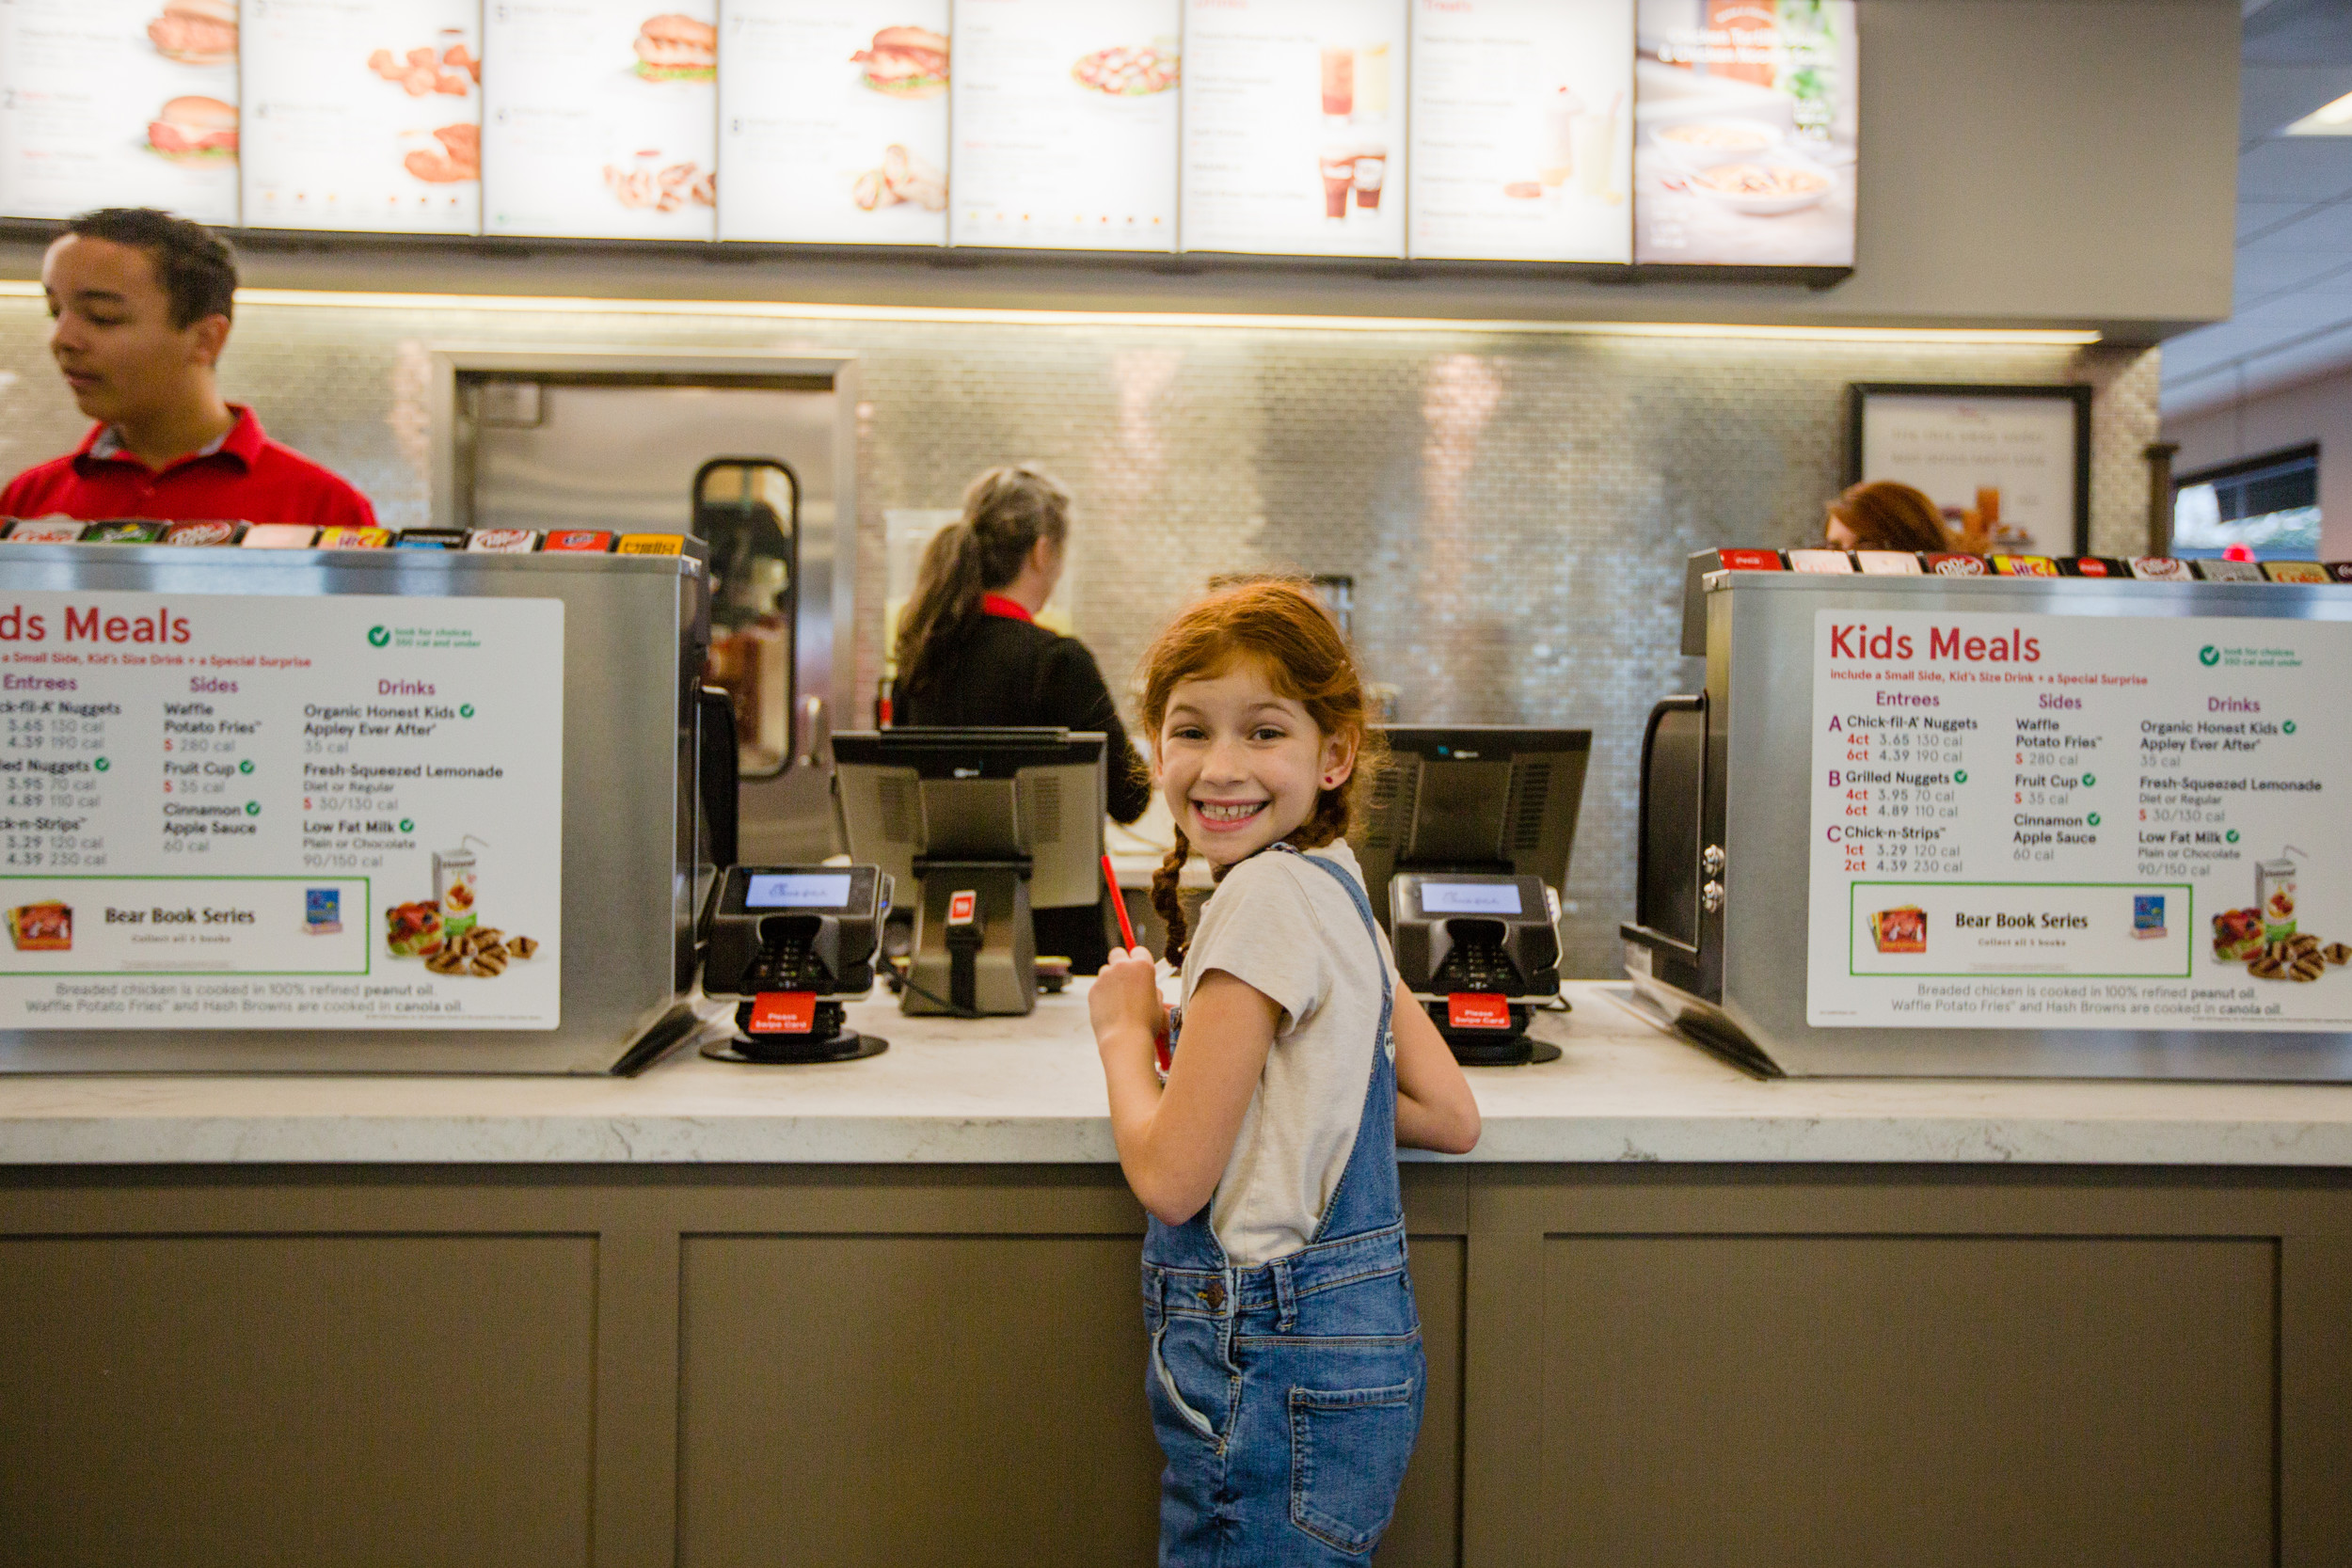 There were a lot of smiling faces Wednesday when Sumter's freestanding Chick-fil-A reopened for business.